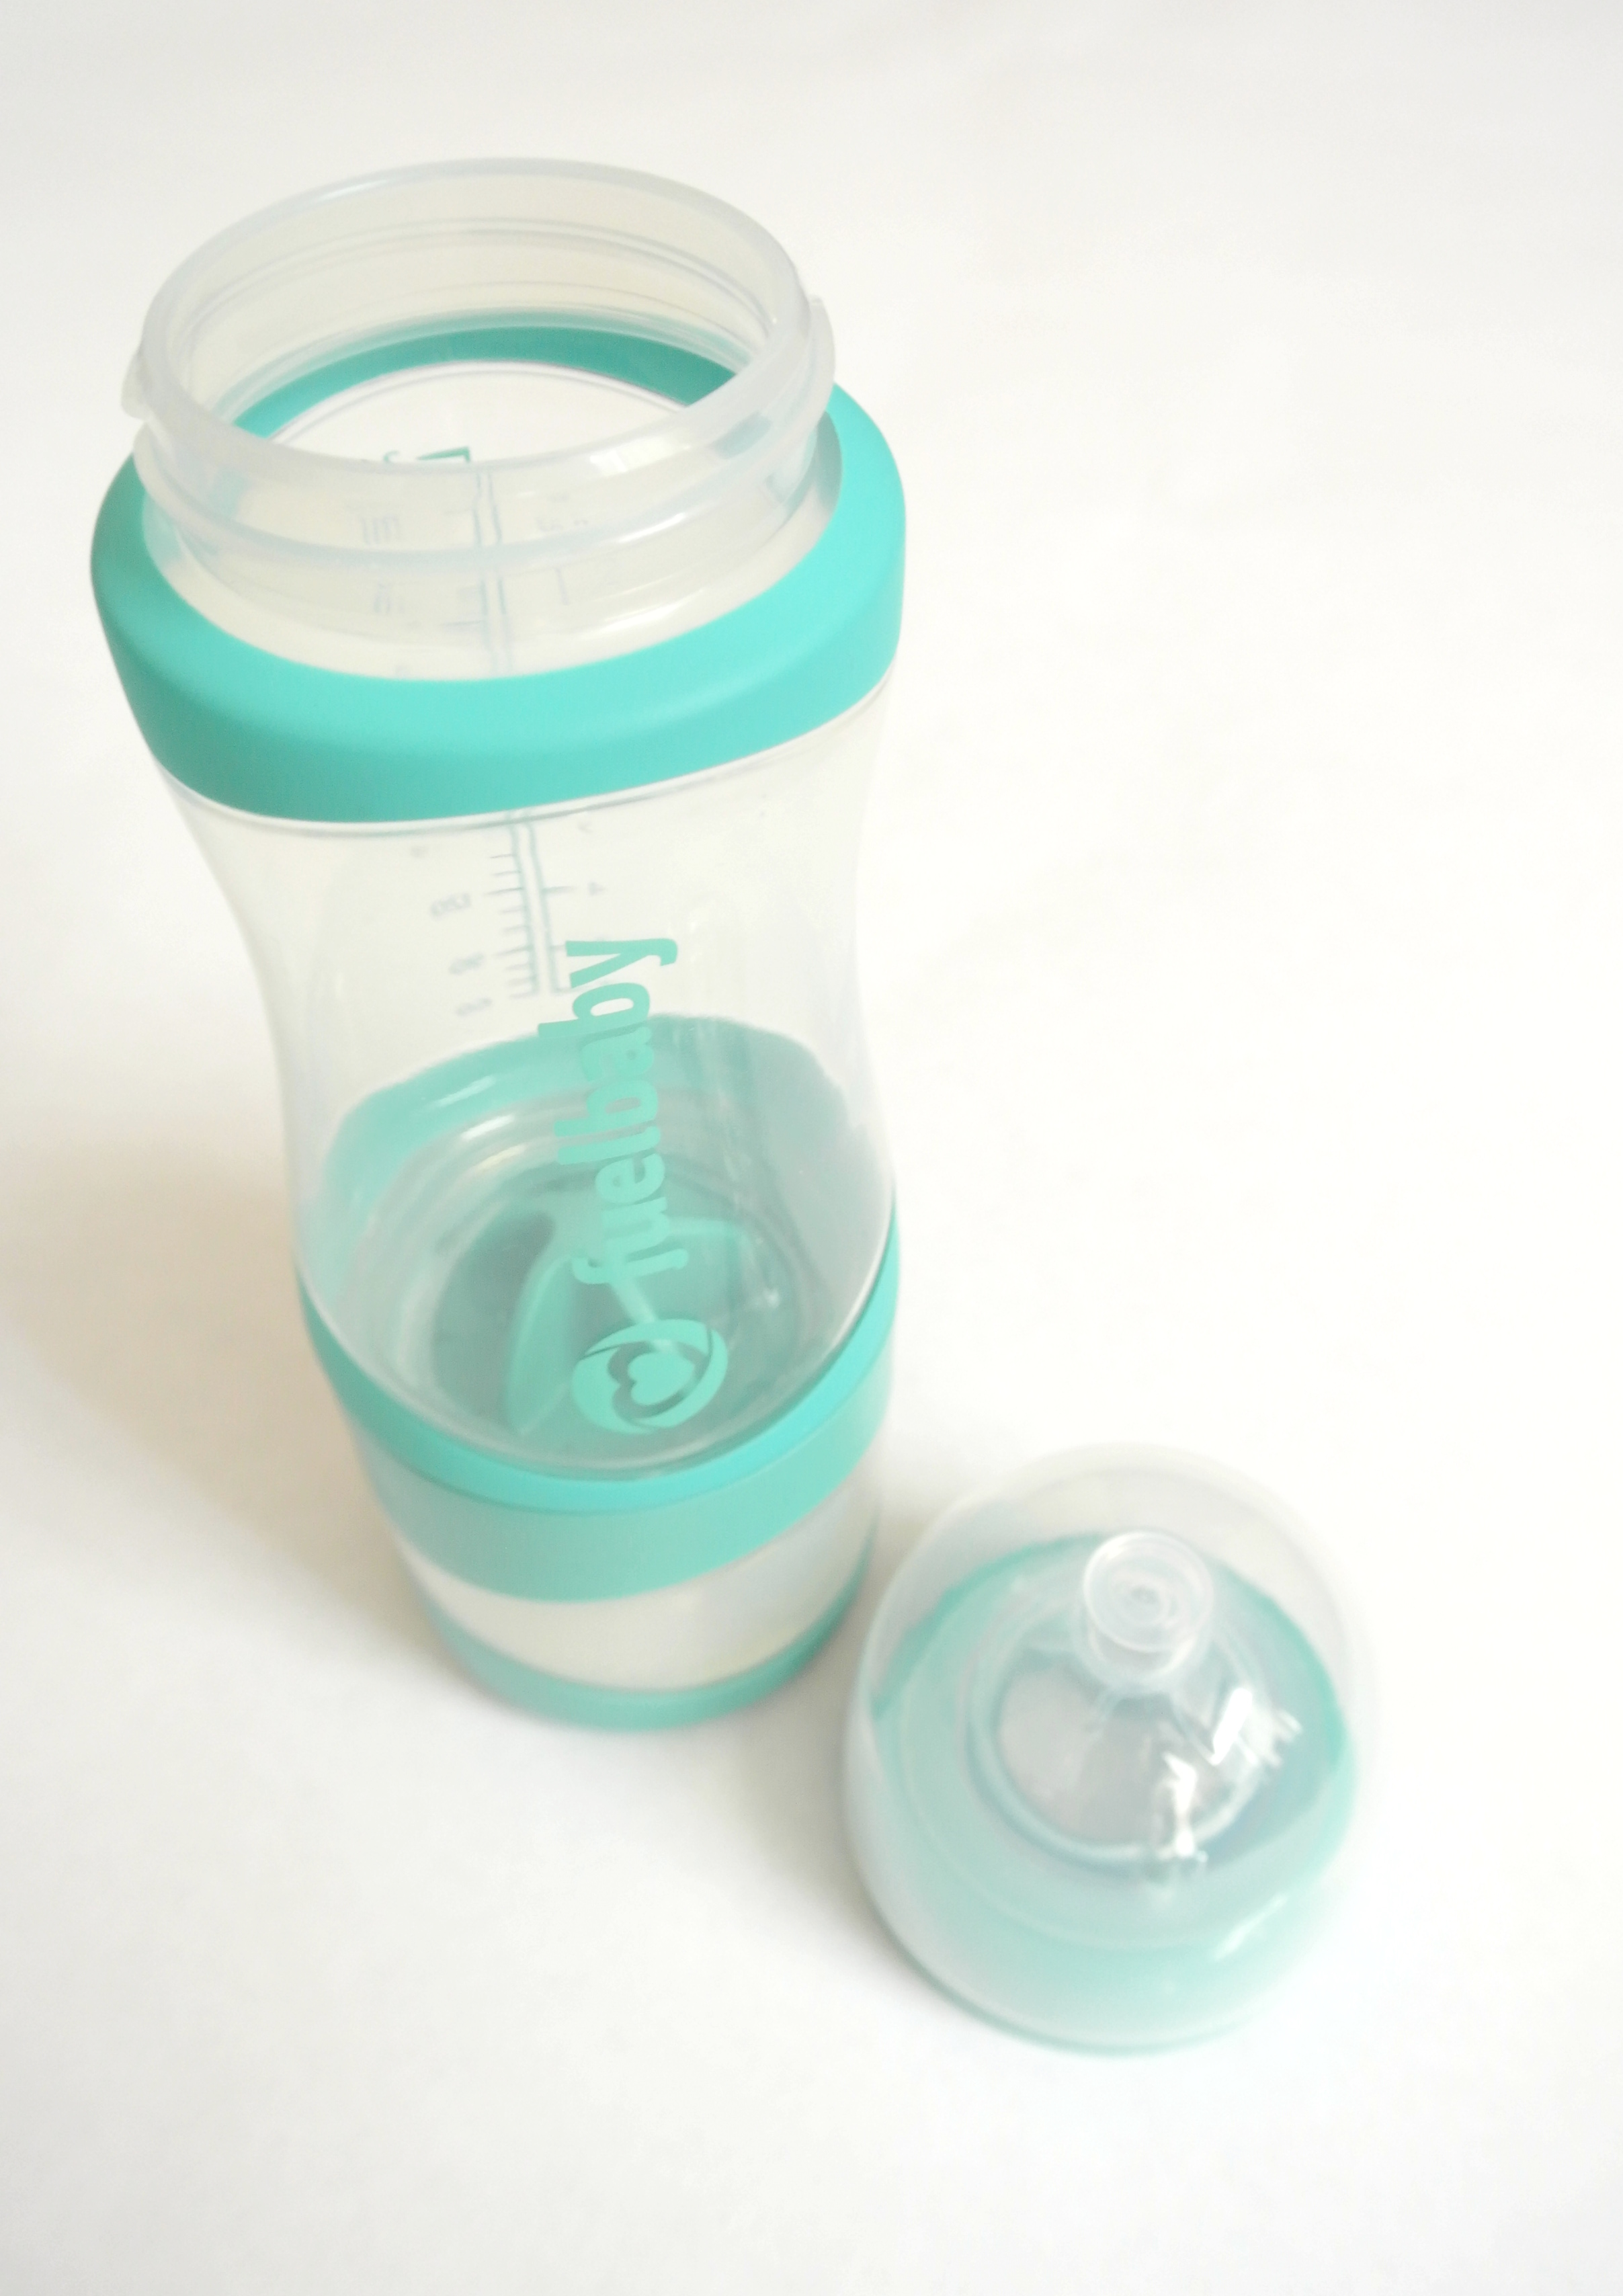 fuelbaby, bottle, baby, feeding, formula, dual, 2 in 1, review, sponsored, product, gadget, new, easy to use, blue, yellow, pink, powder, agitator, fueler, water, shake, to go, tester, momlife, babyhood, motherhood, parenthood, momblogger